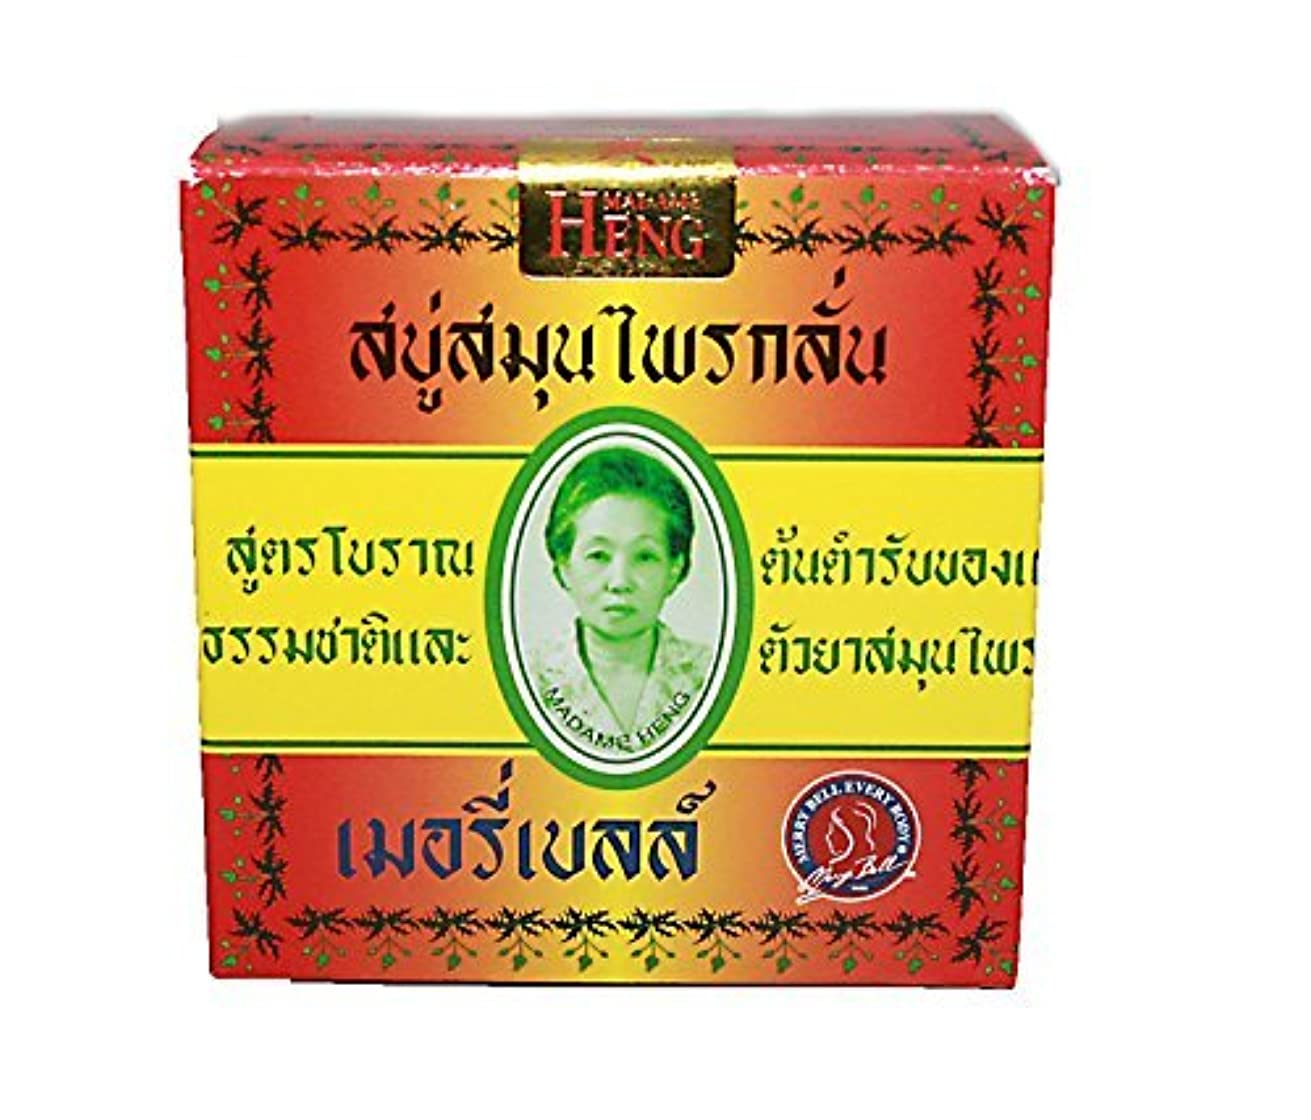 カトリック教徒気怠い一般的なMADAME HENG NATURAL SOAP BAR MERRY BELL ORIGINAL THAI (net wt 5.64 OZ.or 160g.) by onefeelgood shop